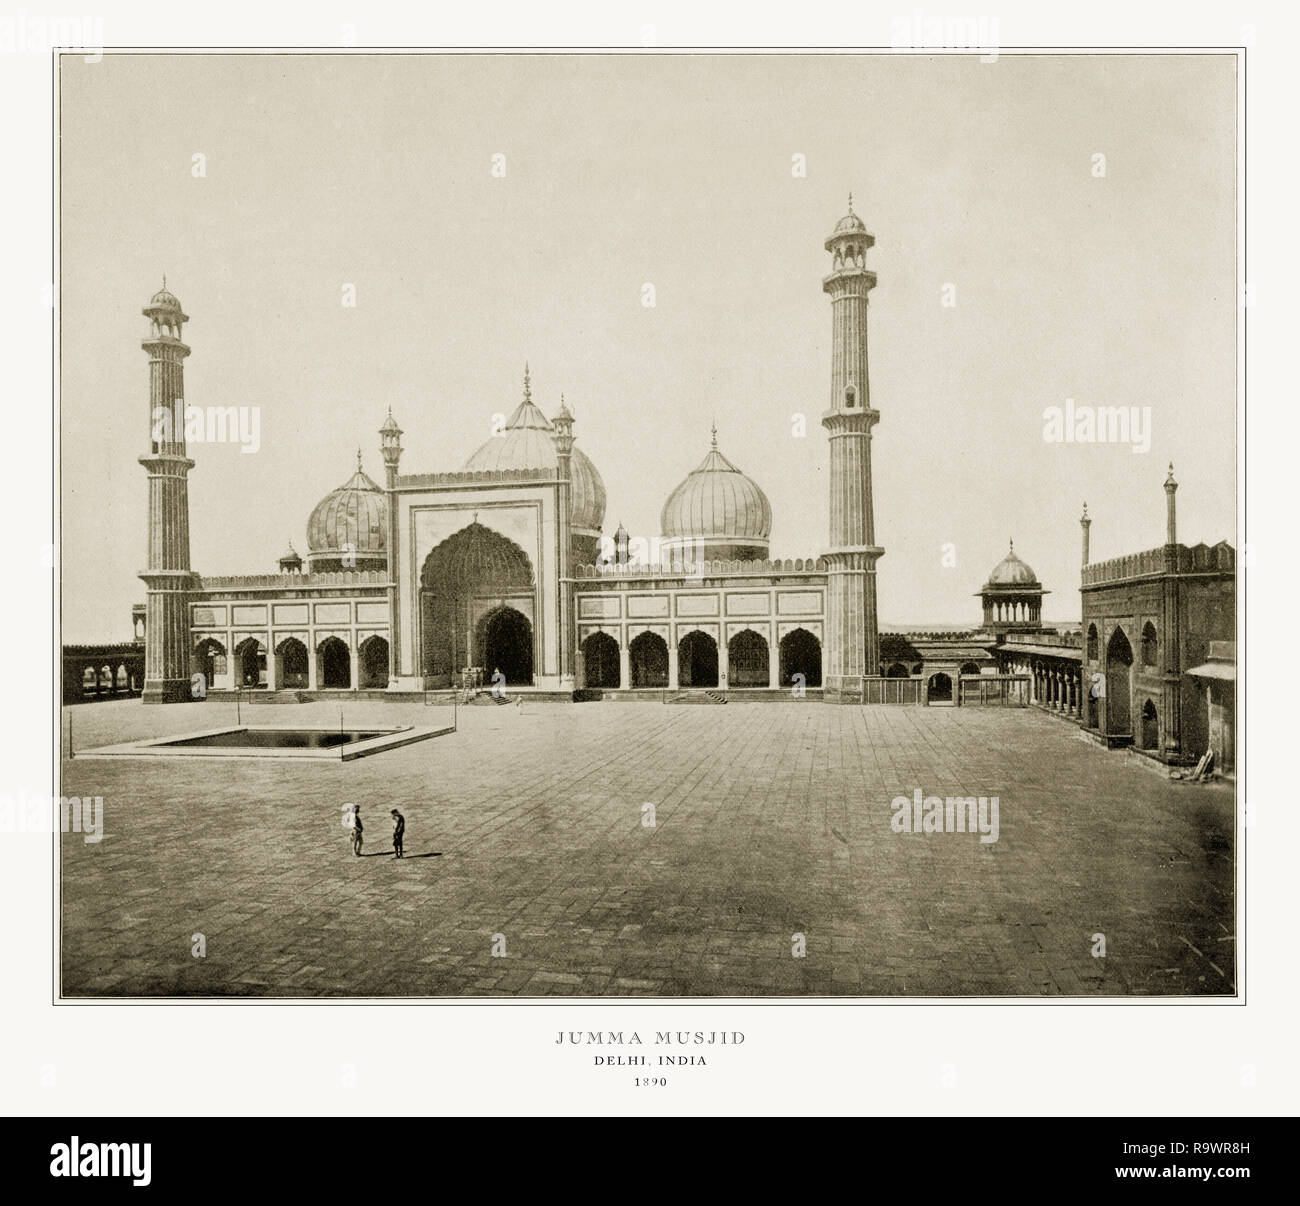 Jumma Musjid, Delhi, India, Antique India Photograph, 1893 Stock Photo